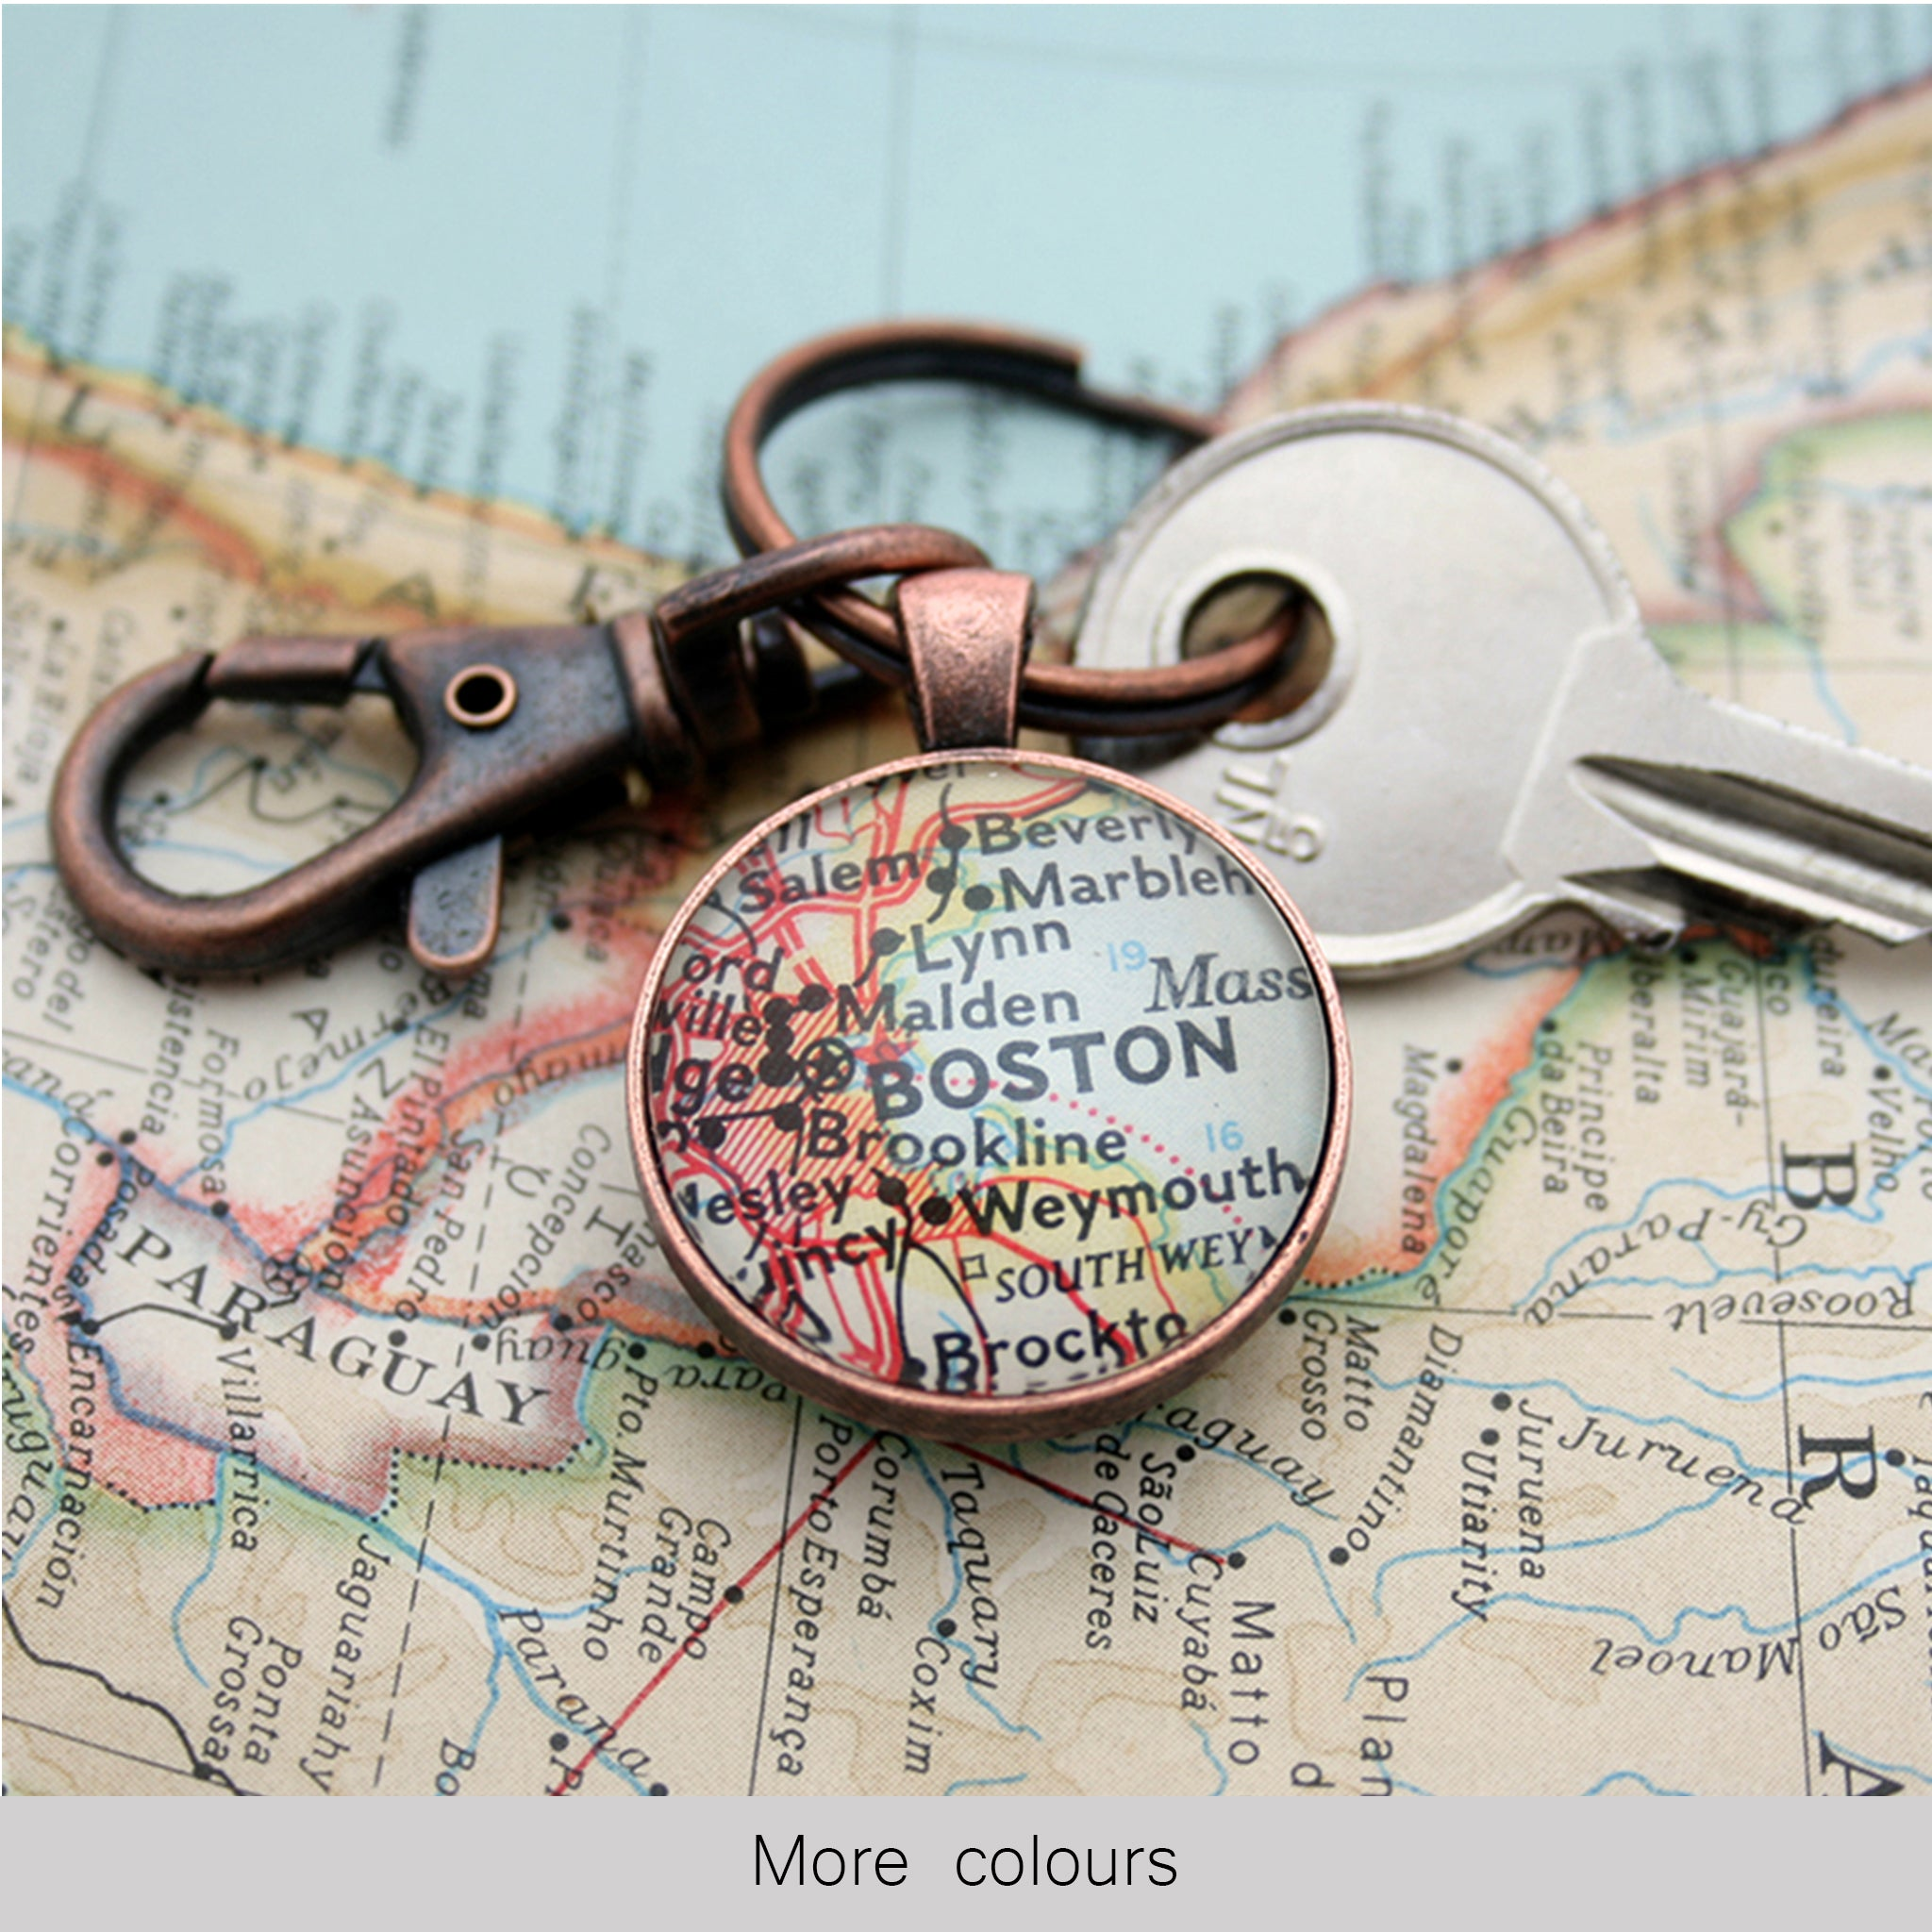 Personalised Keyring in copper color featuring map of Boston